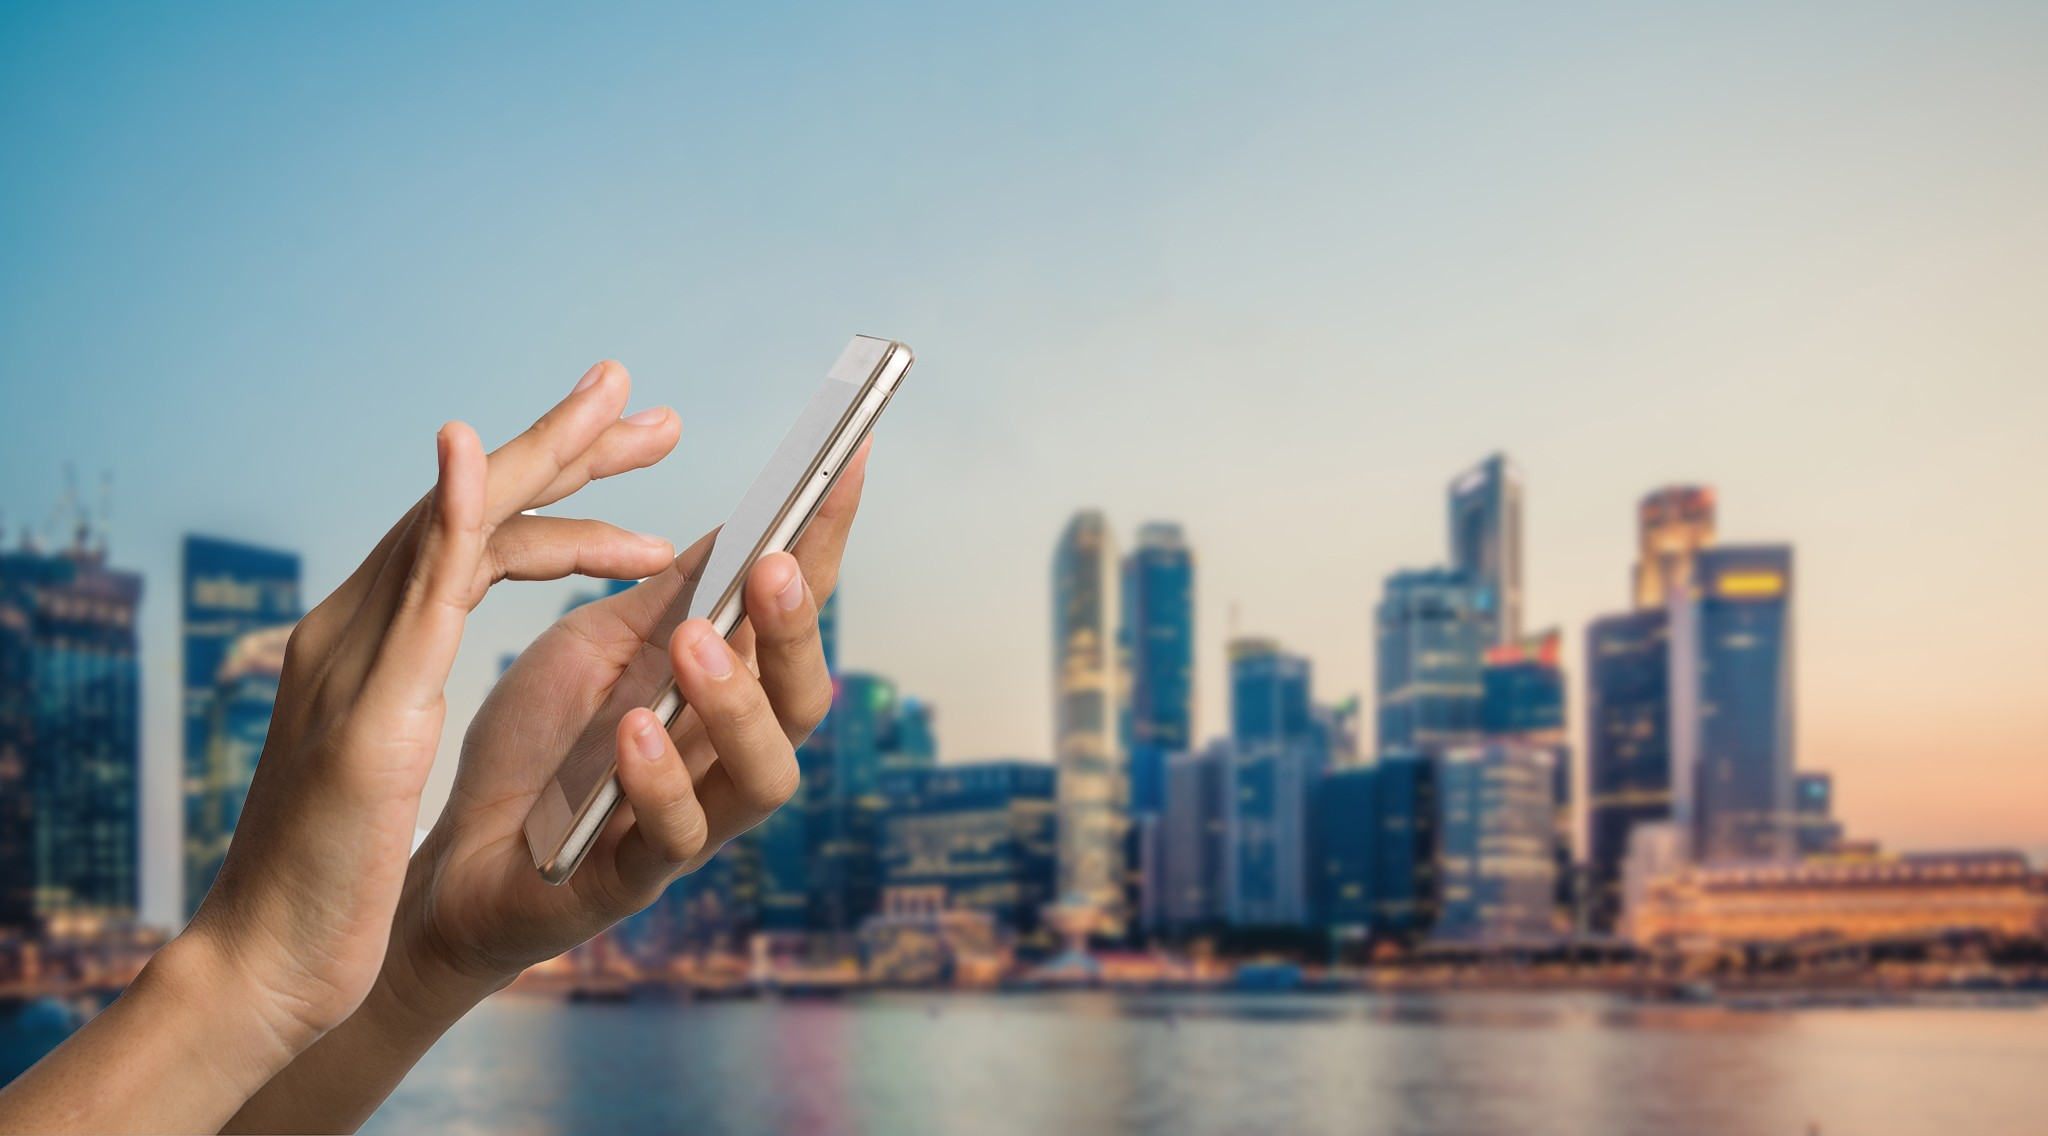 Banking Consumers Want Financial Empowerment, Not Just Apps